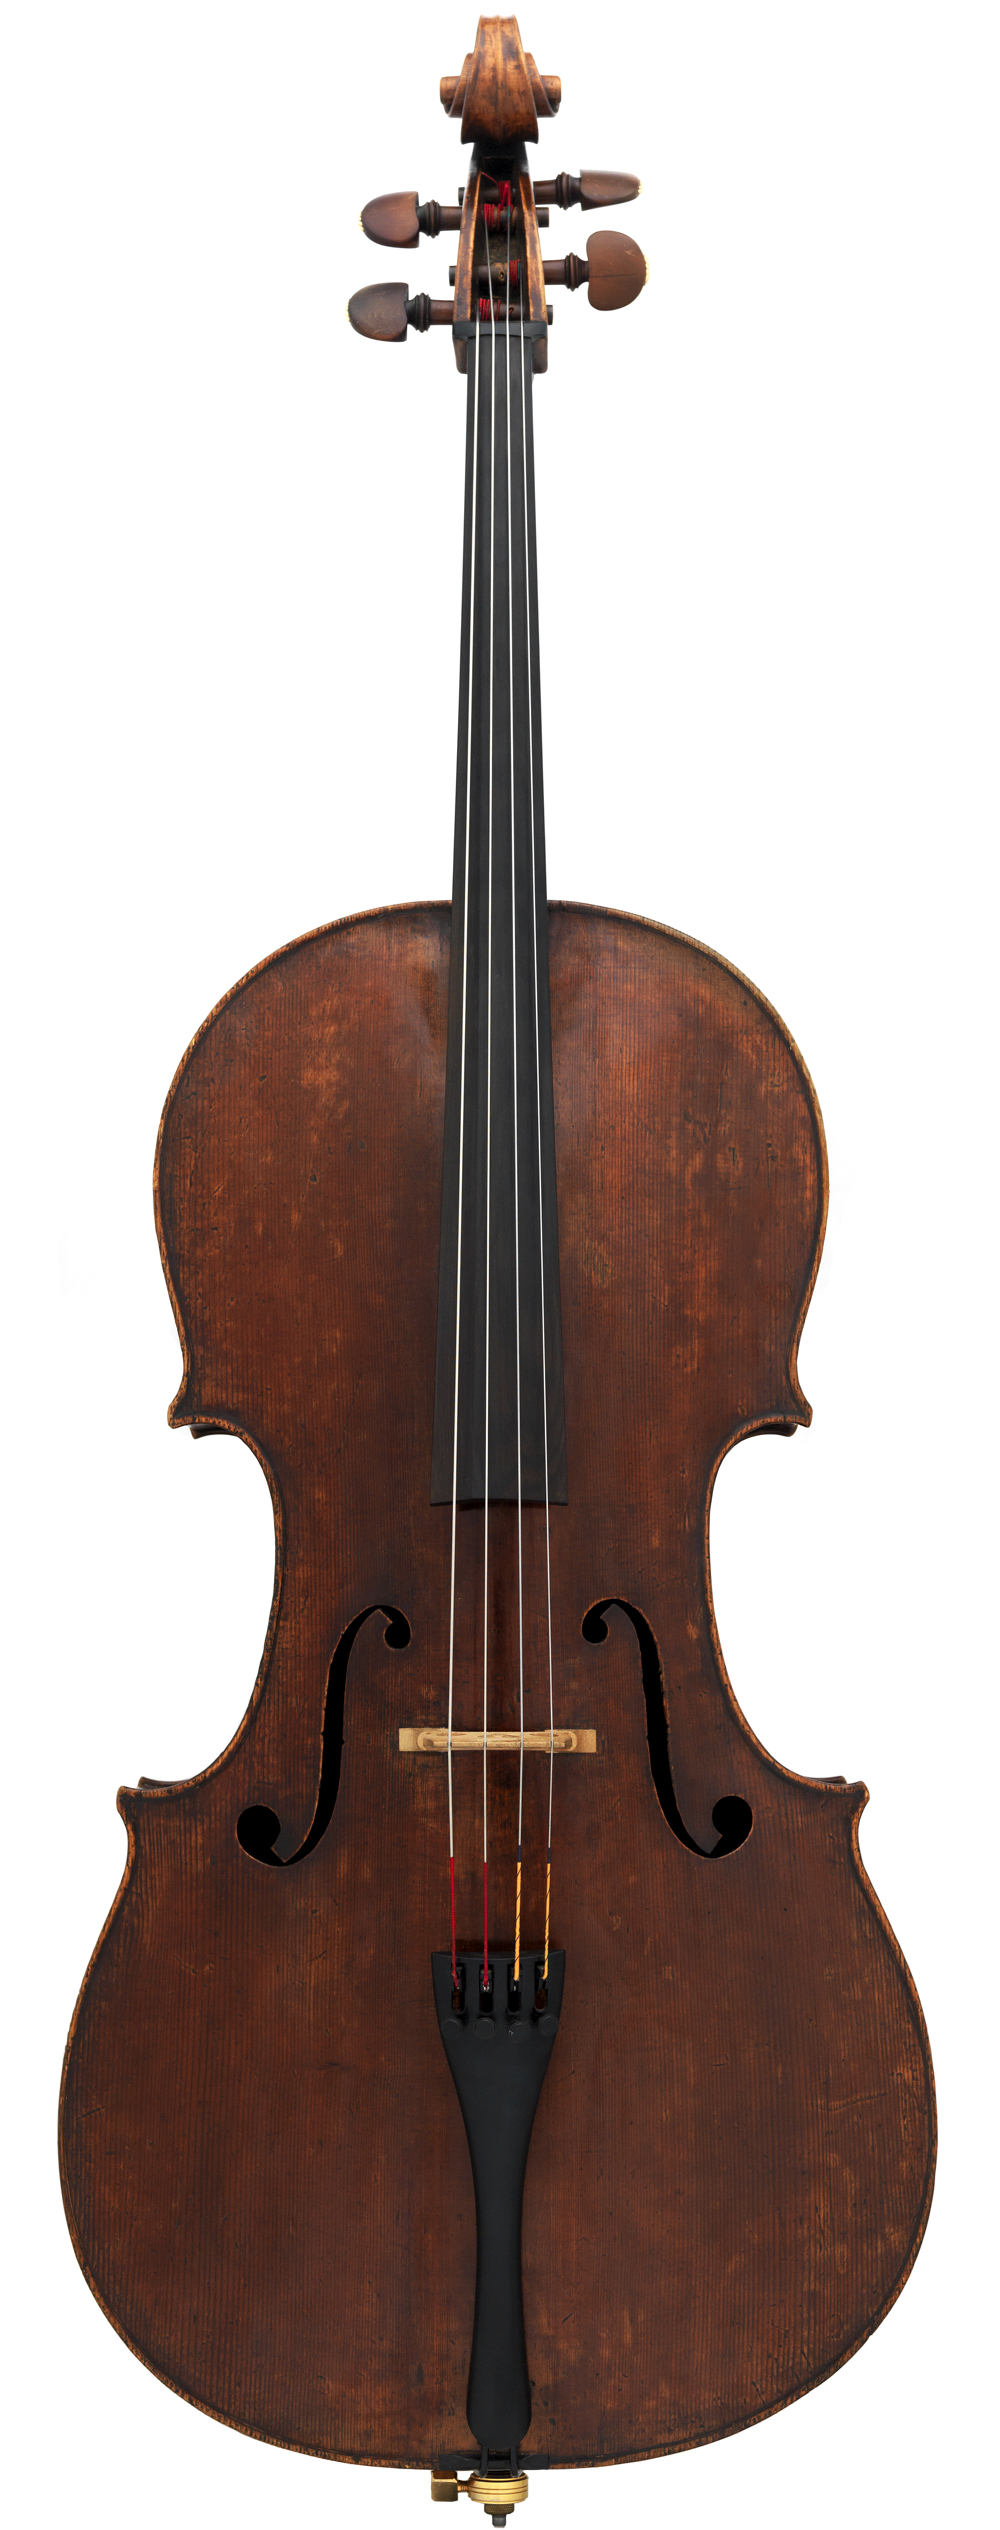 The Pawle is one of the cellos made on the B piccola mould in 1730